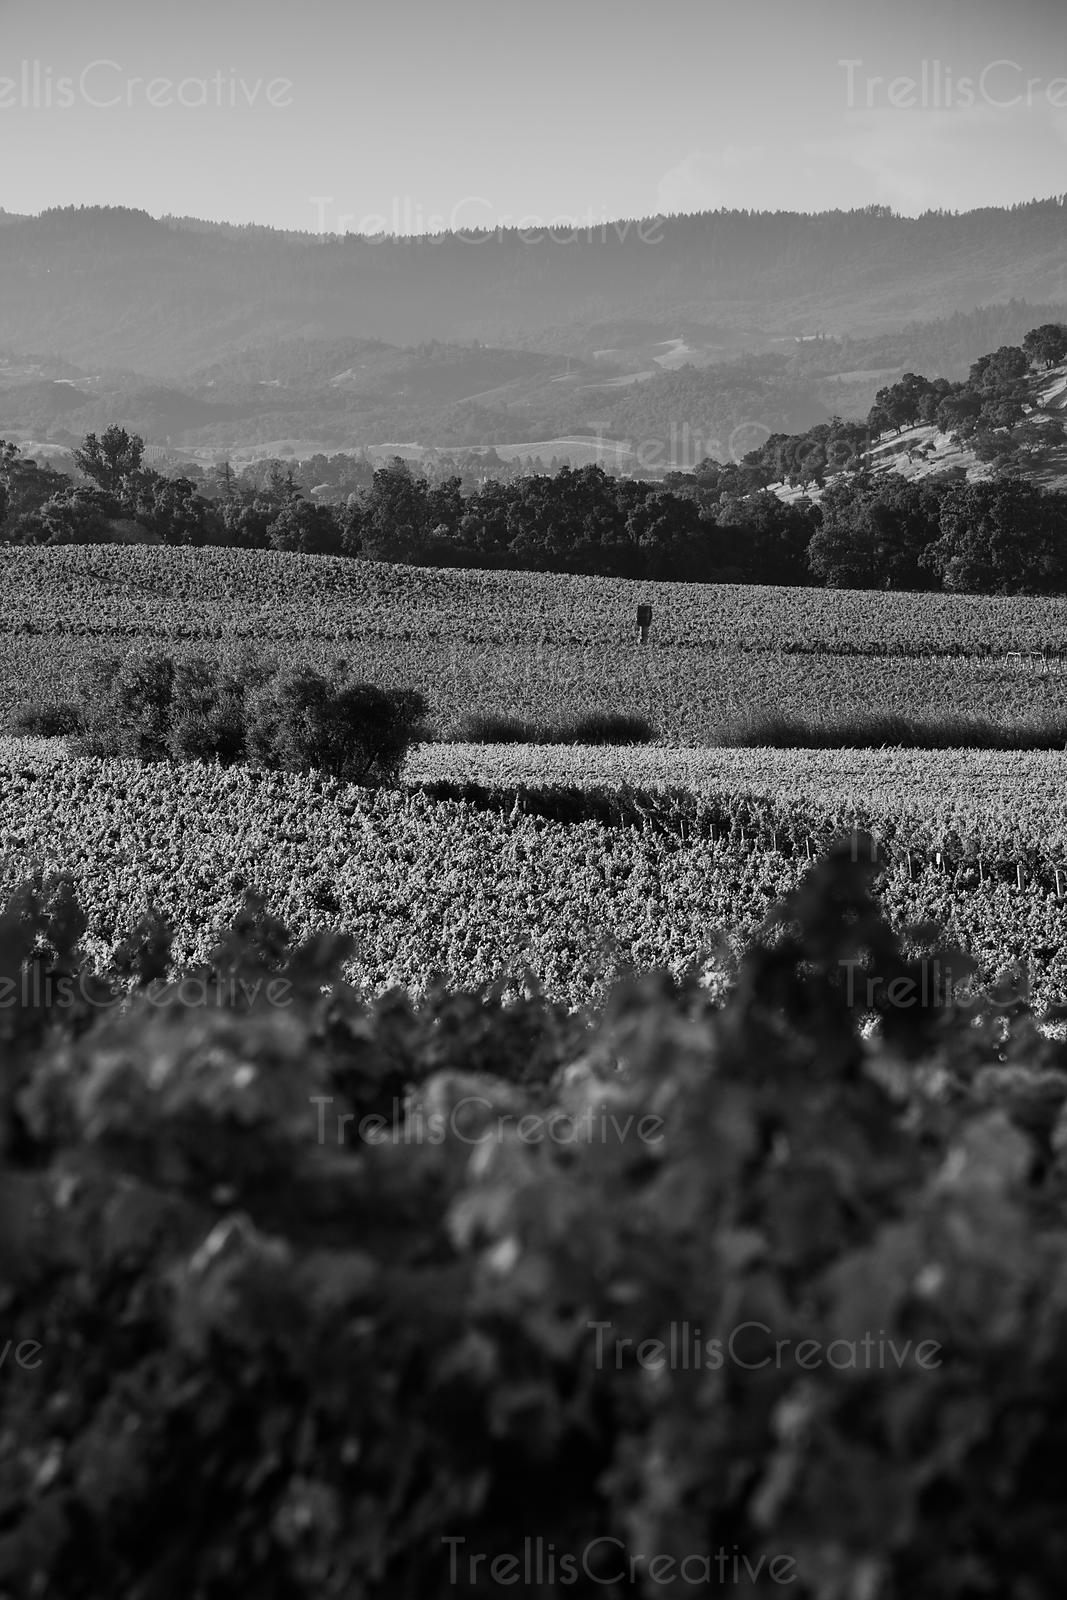 Looking across a sun covered Yountville vineyard in the Napa Valley